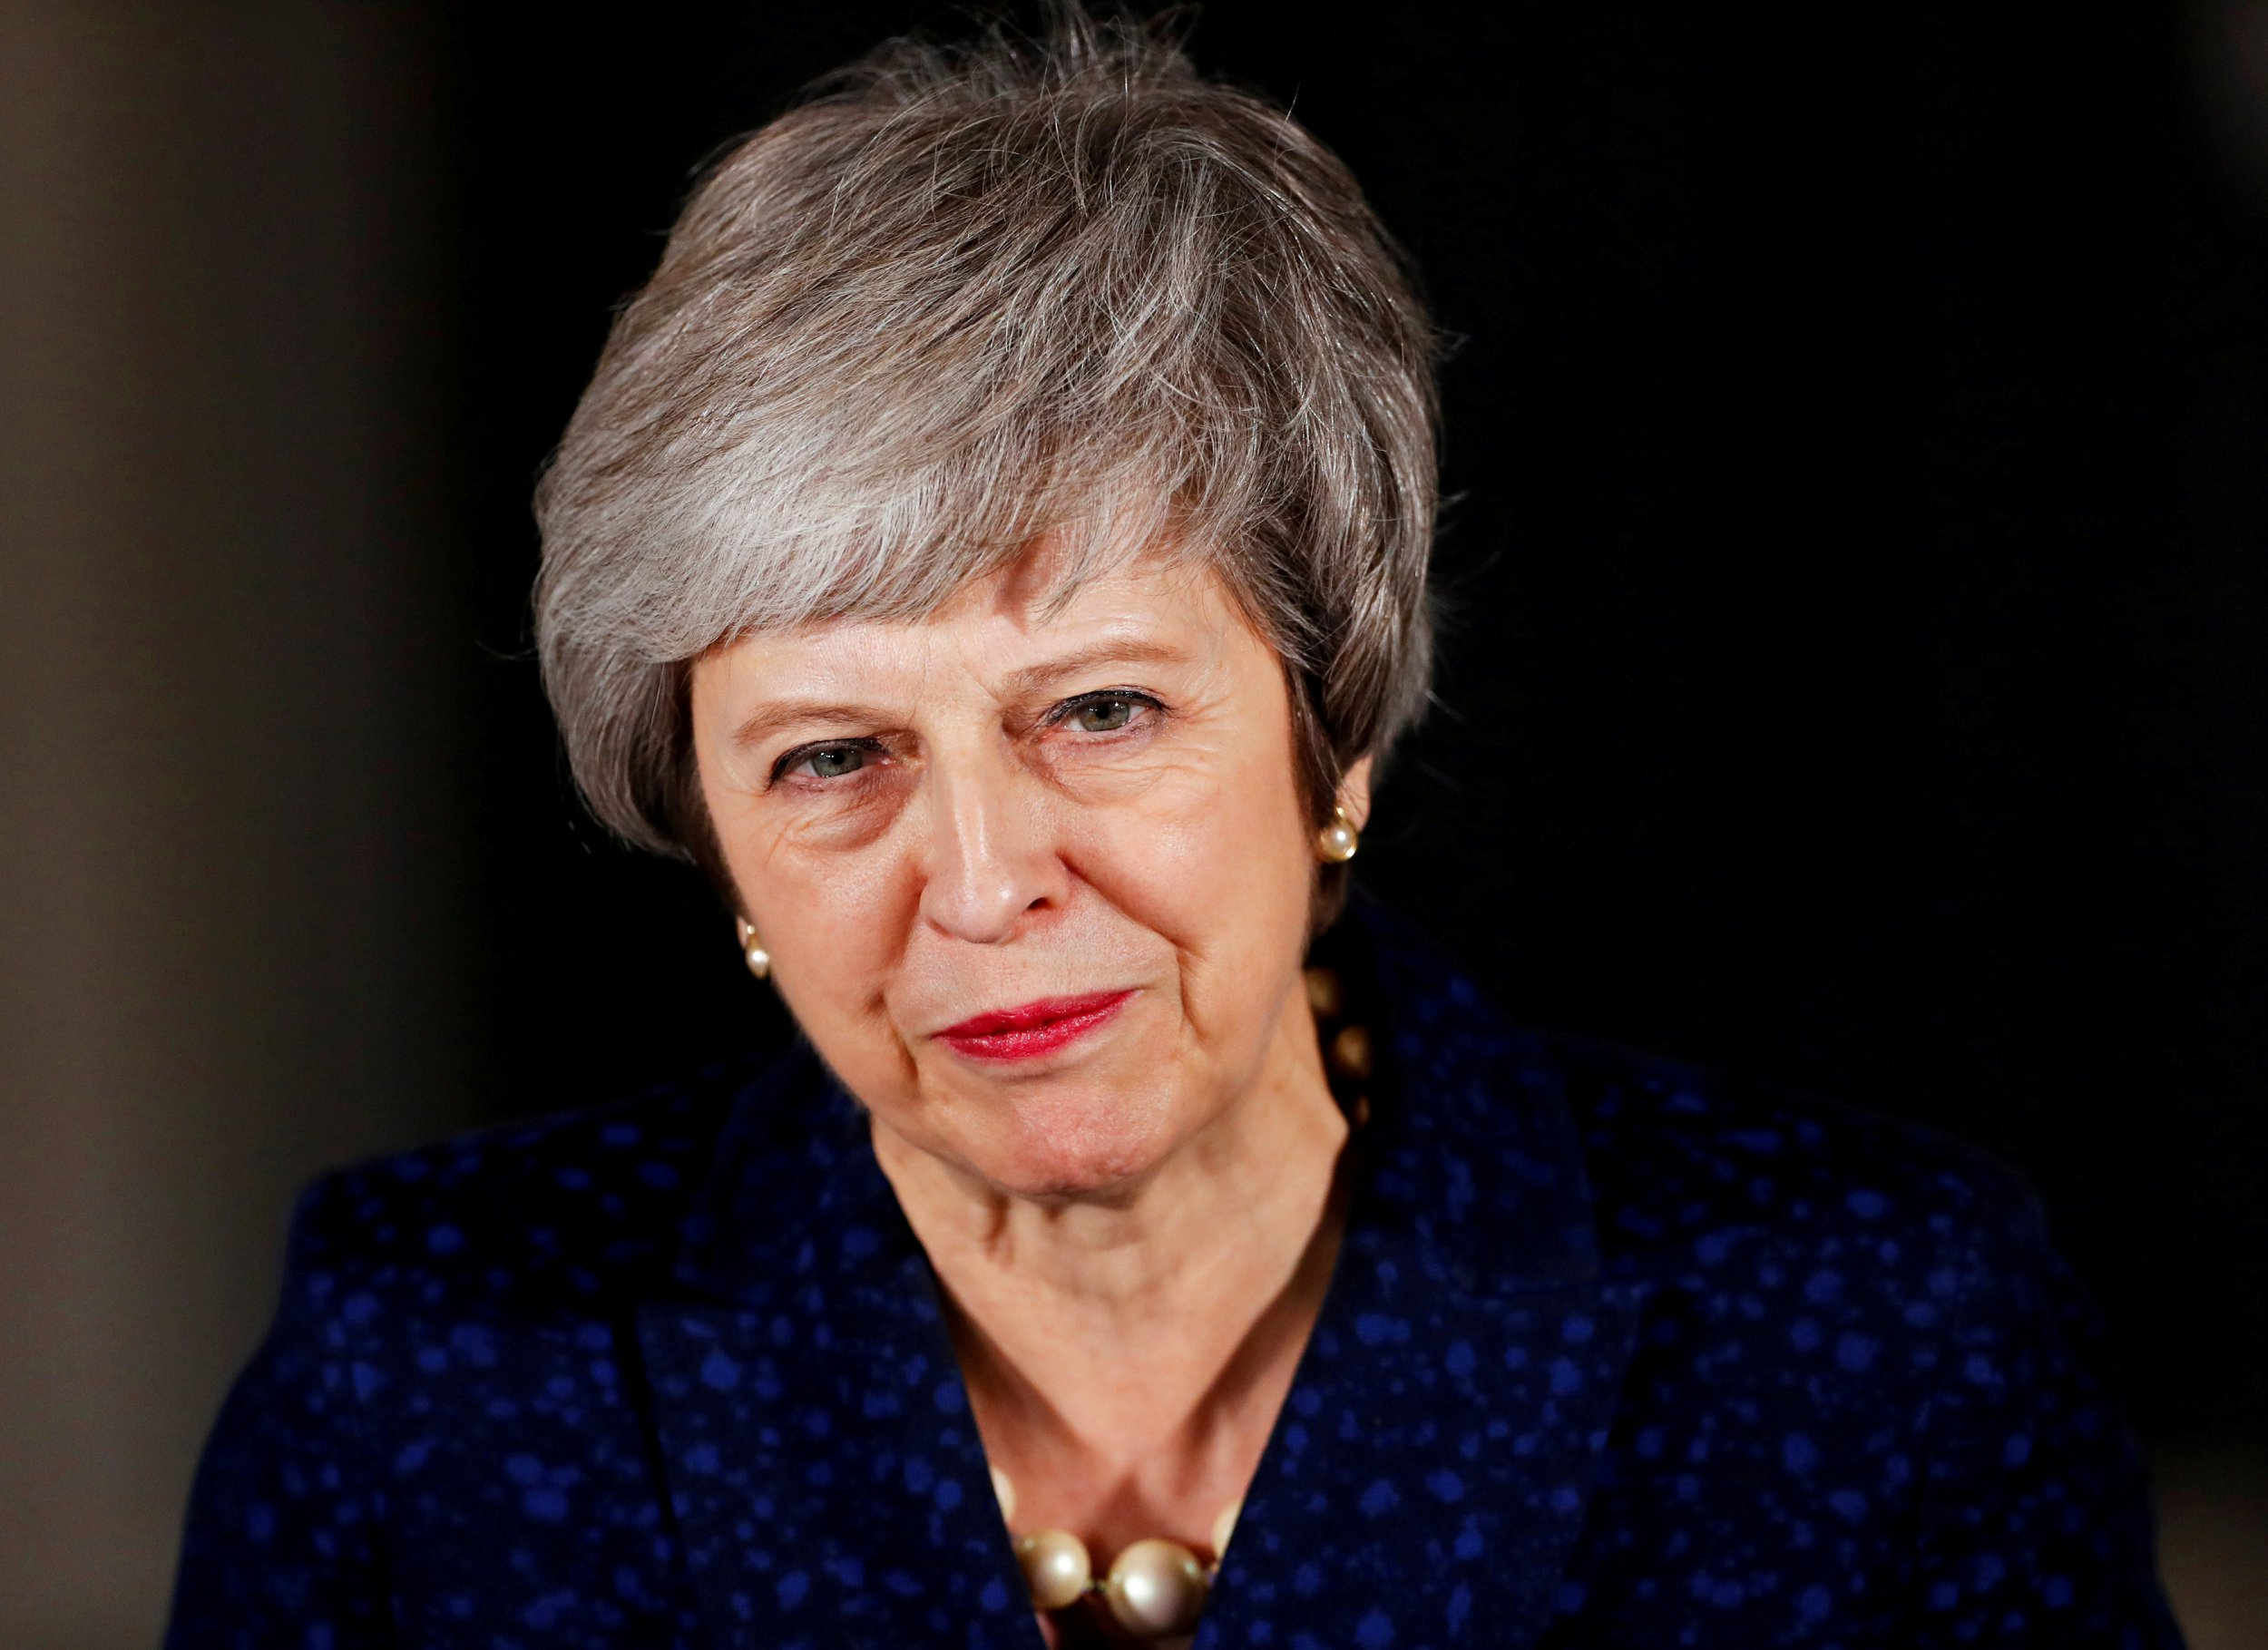 FILE PHOTO: Britain's Prime Minister Theresa May speaks outside 10 Downing Street after a confidence vote by Conservative Party members of parliament, in London, Britain December 12, 2018. REUTERS/Eddie Keogh/File Photo